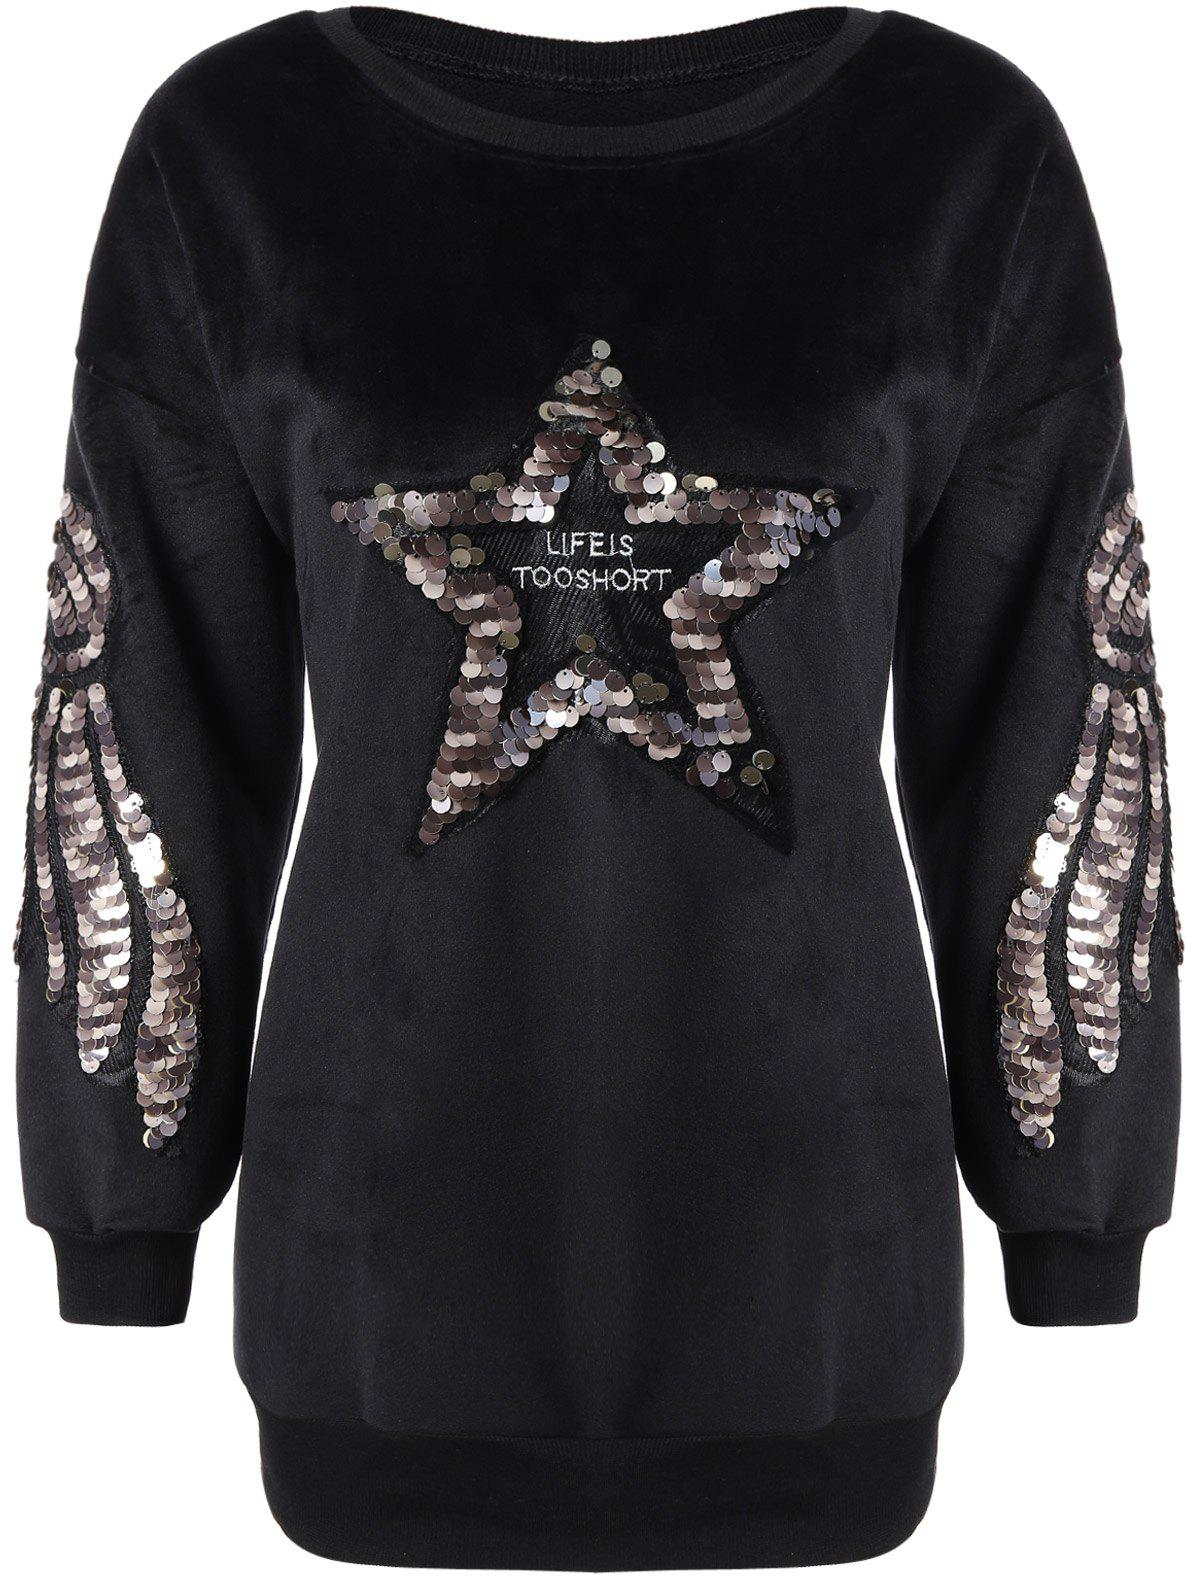 Star Sequin Drop Shoulder Sweatshirt - BLACK ONE SIZE(FIT SIZE XS TO M)